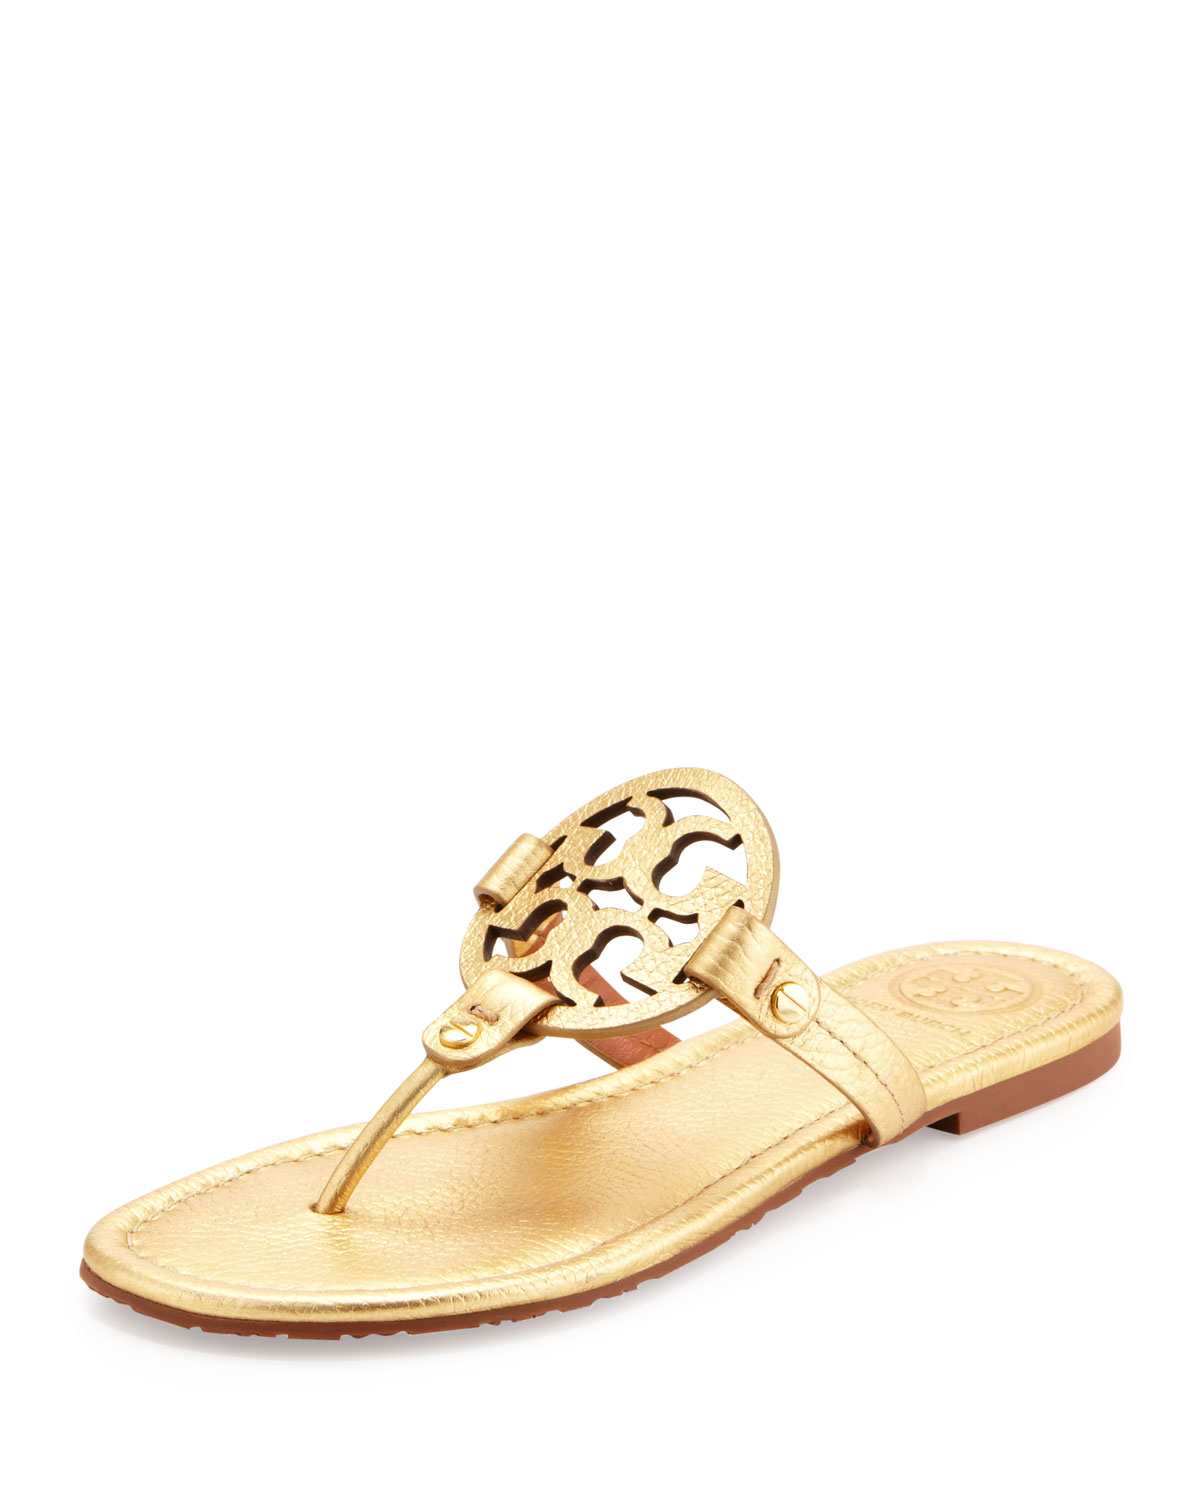 c2c3d9fc31064 Tory Burch Tory Burch Miller Metallic Logo Thong Sandals